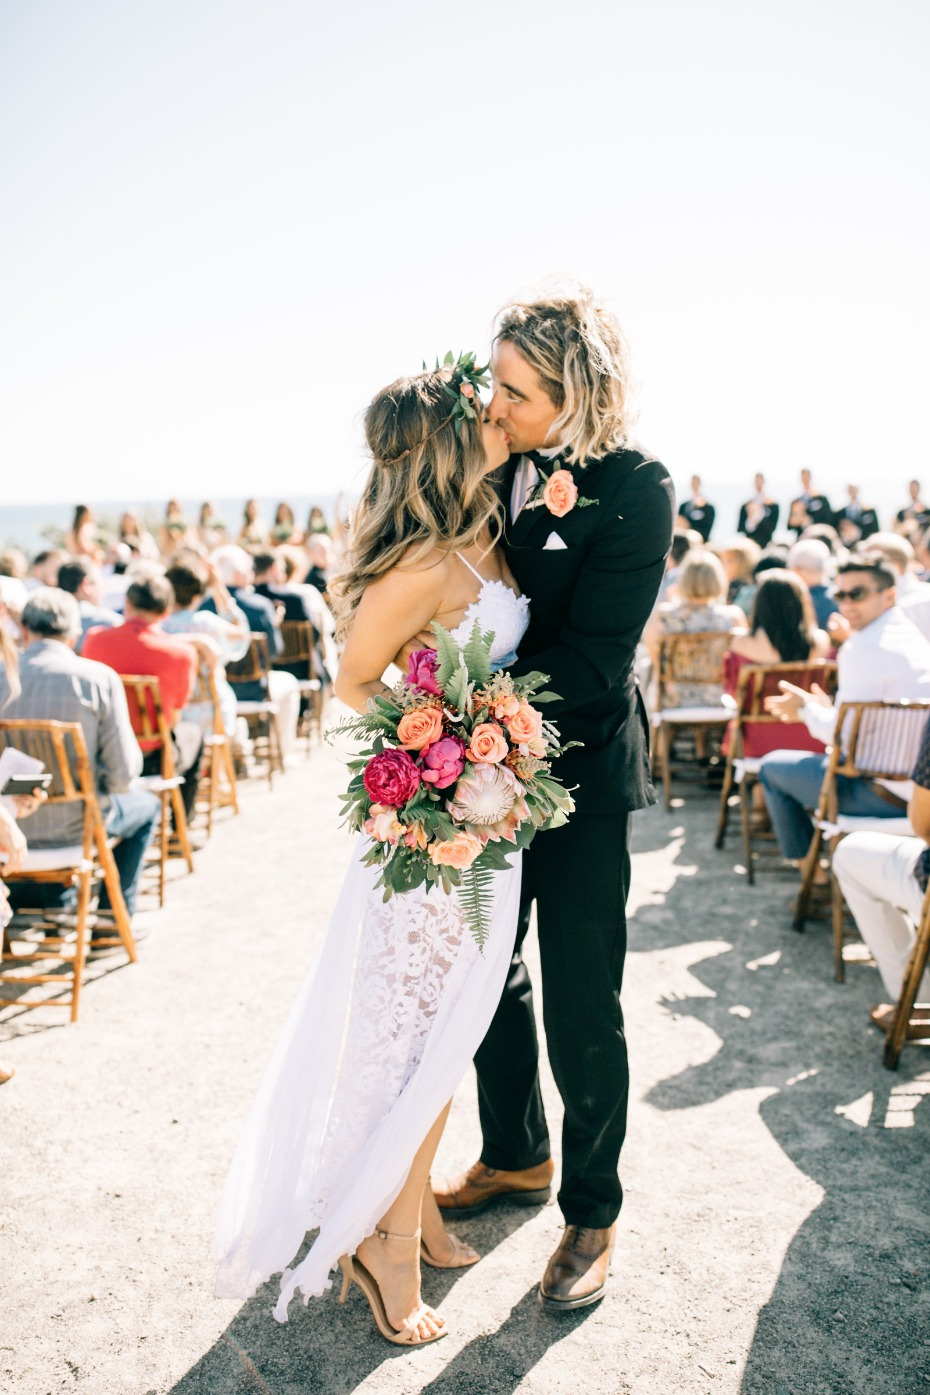 get married at the beach like they did